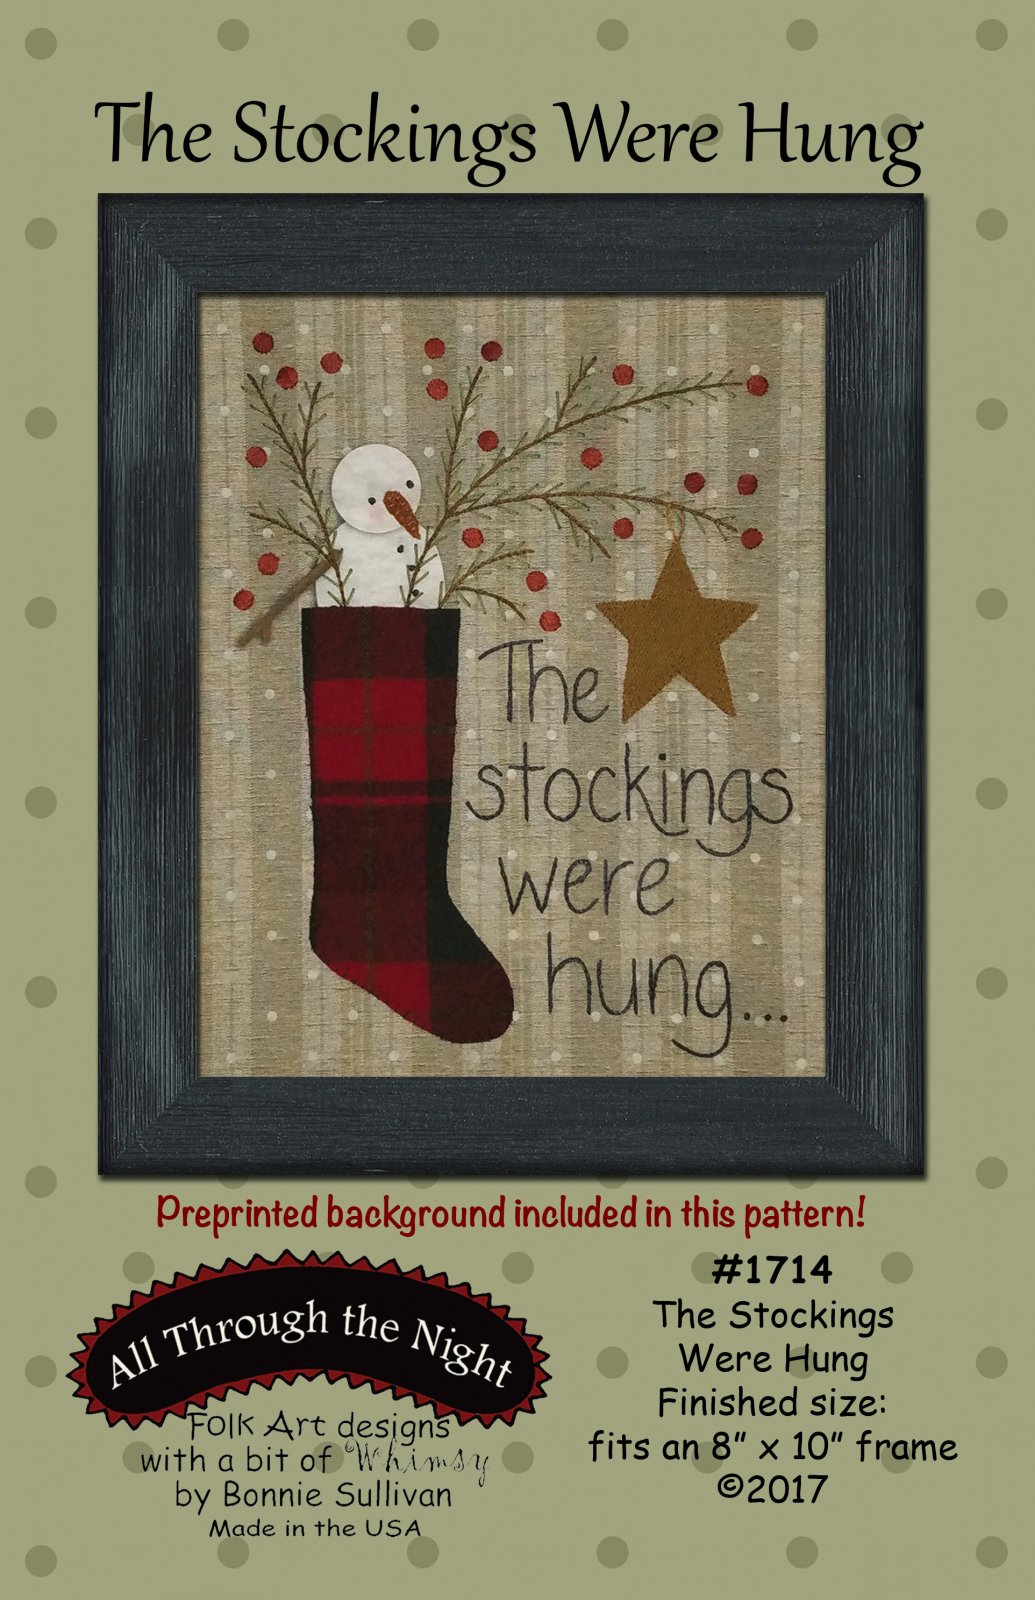 1714 - The Stockings Were Hung